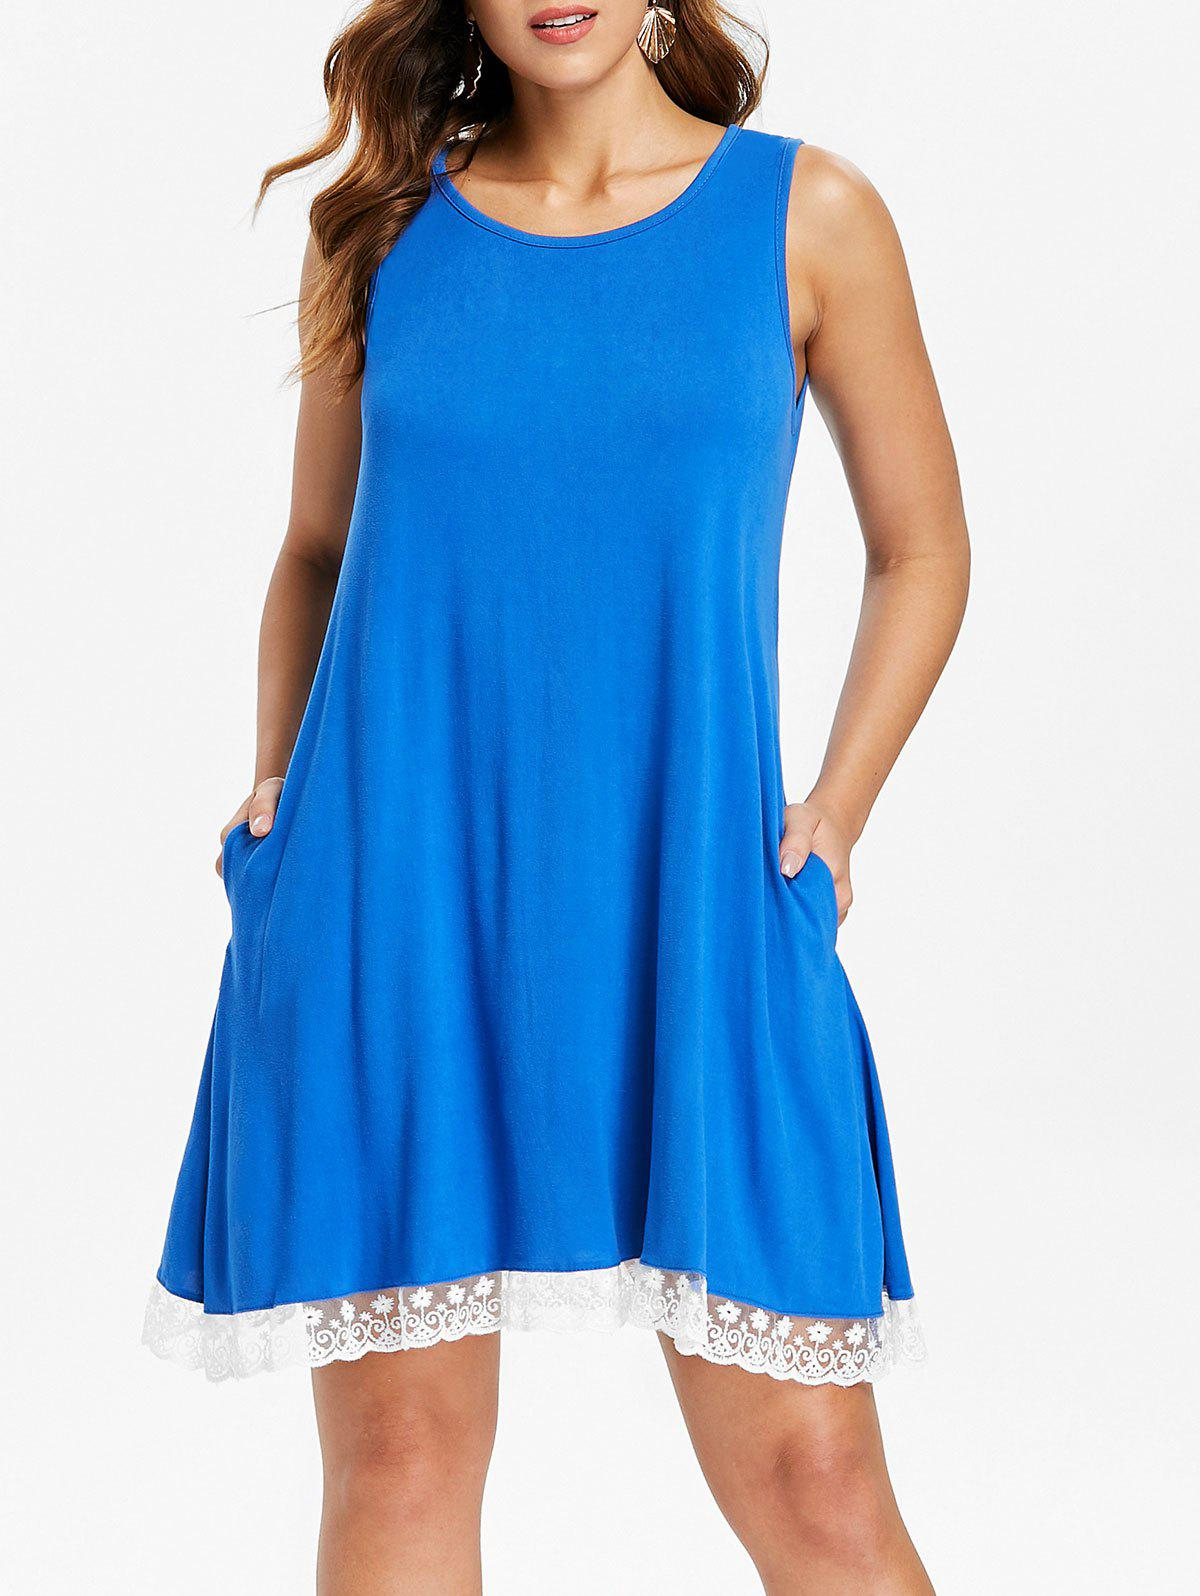 Store Lace Hemline Sleeveless Shift Dress